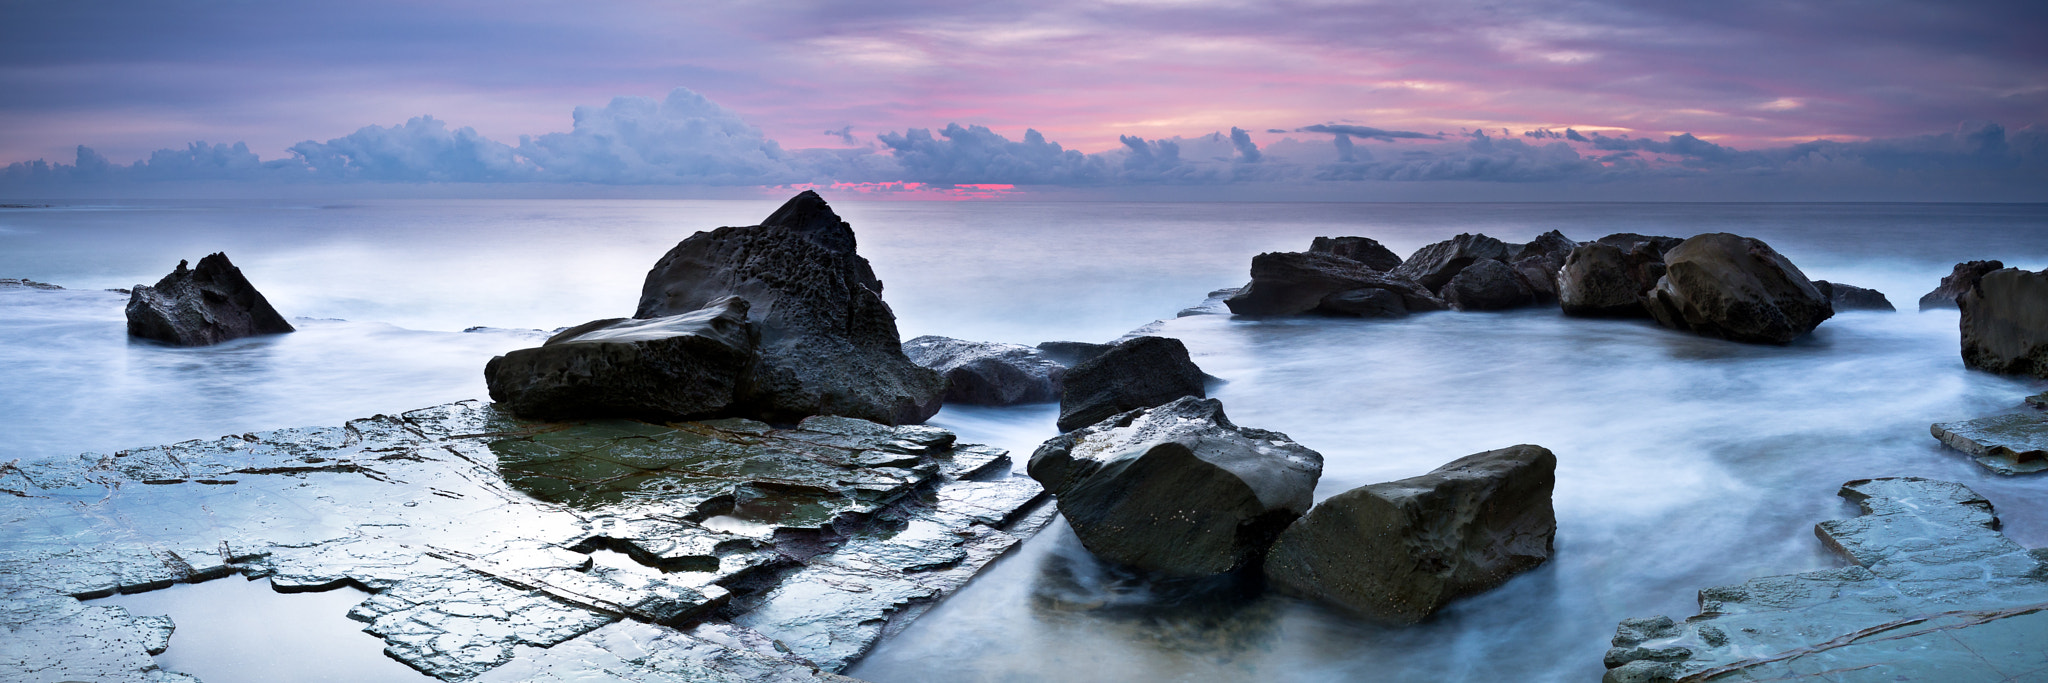 Photograph Rocks in the Wash by Mathew Courtney on 500px